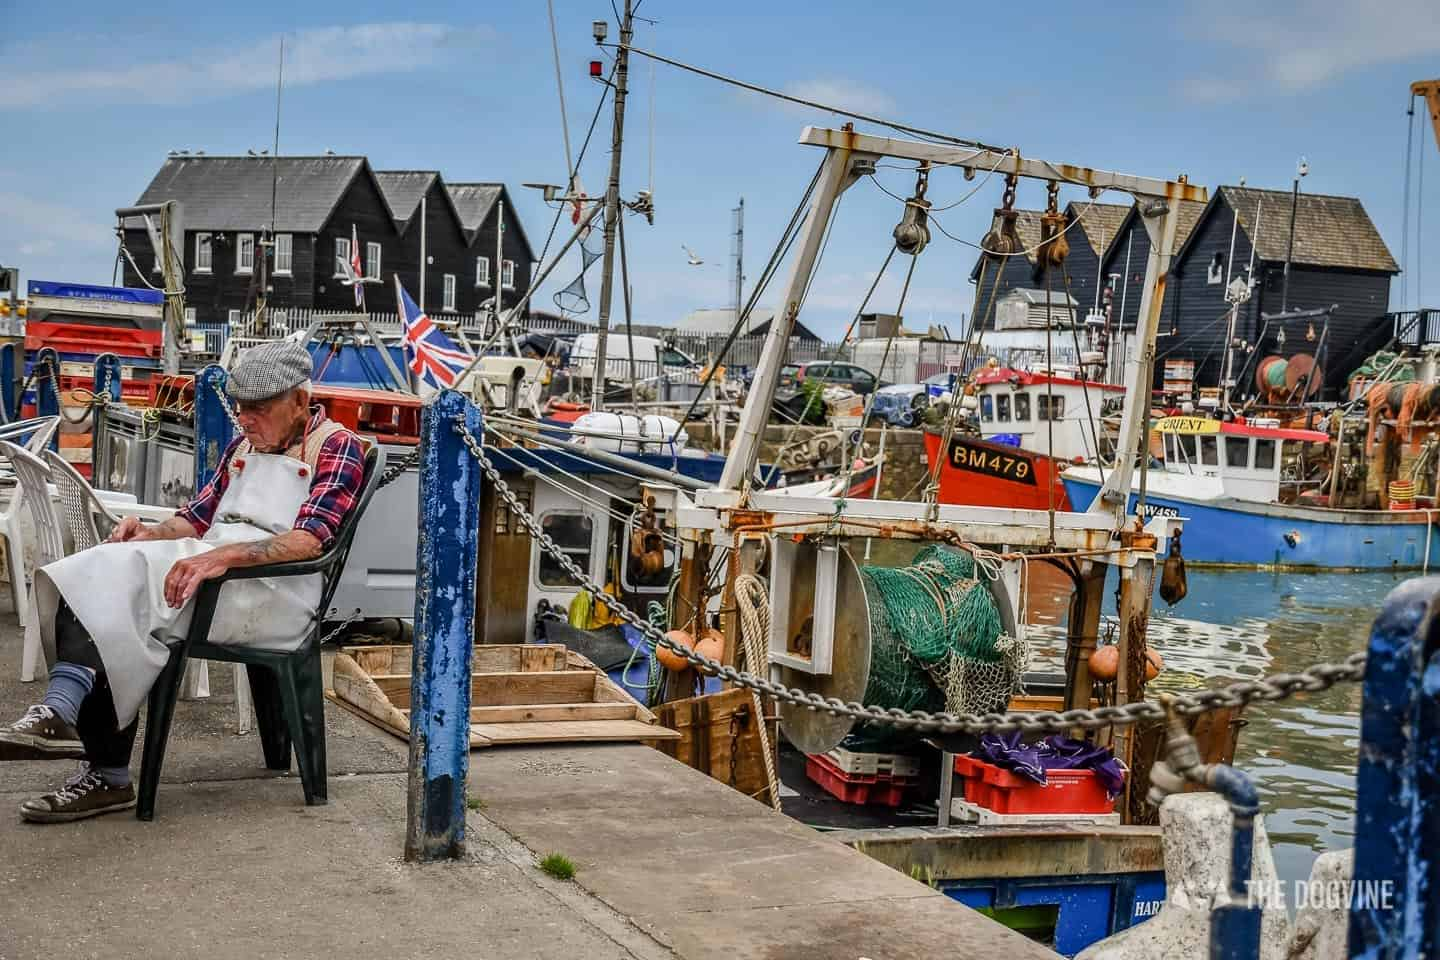 Dogs Day Out With Fetch & Follow On Tour In Dog-Friendly Whitstable 12